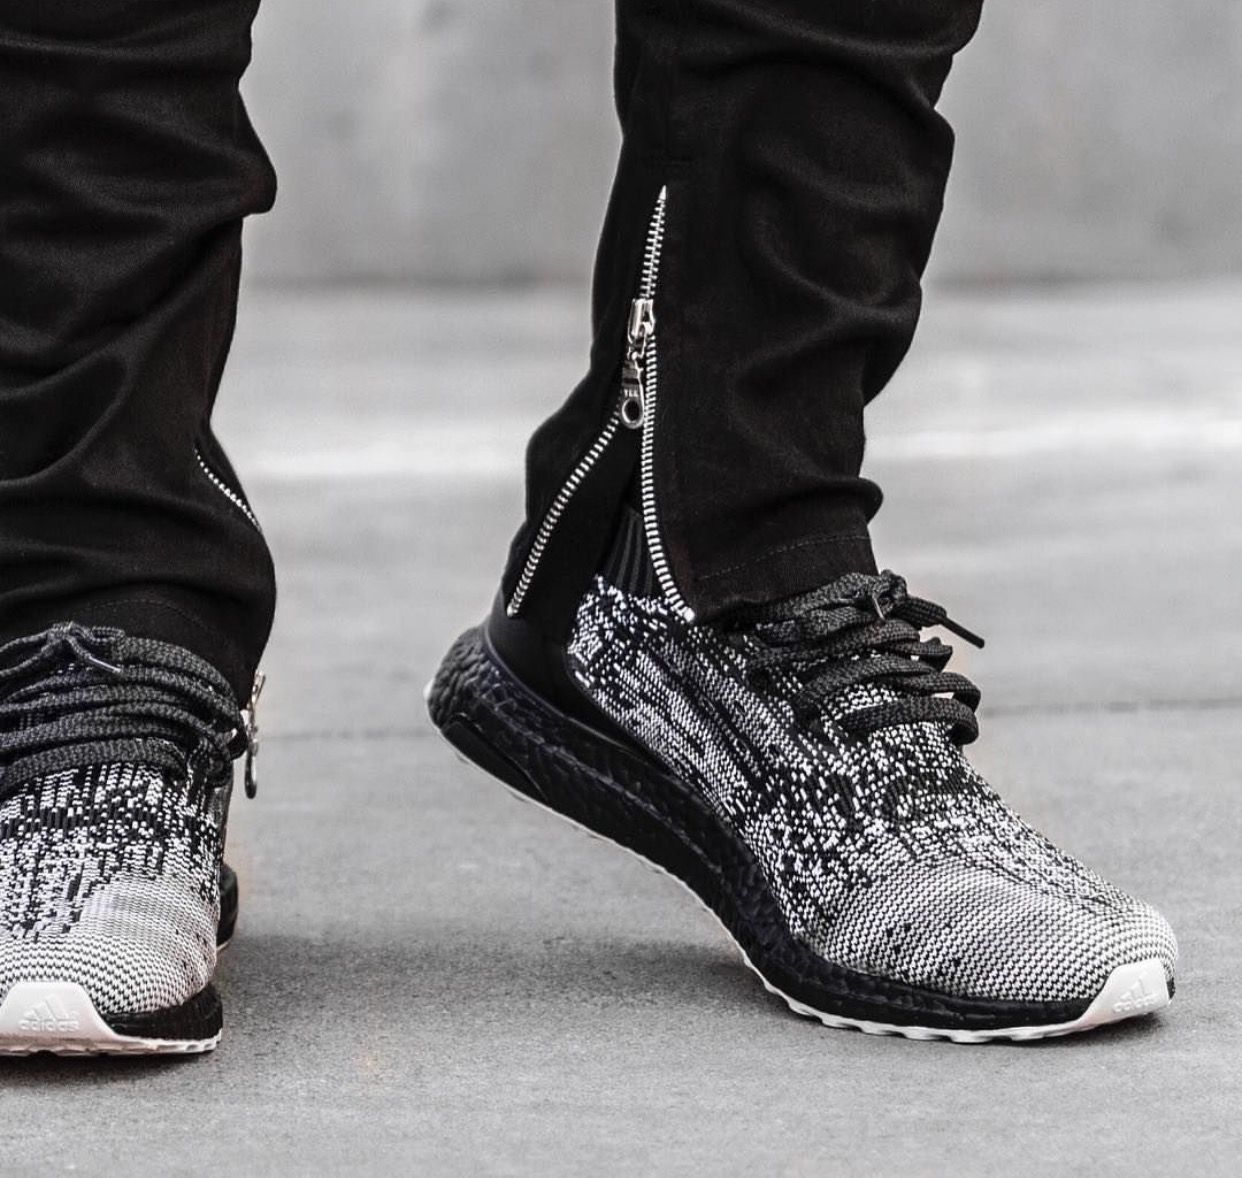 adidas Chaussures Ultra Boost Uncaged Blk Blanc 2 17 Chaussures adidas Pinterest 34ace6